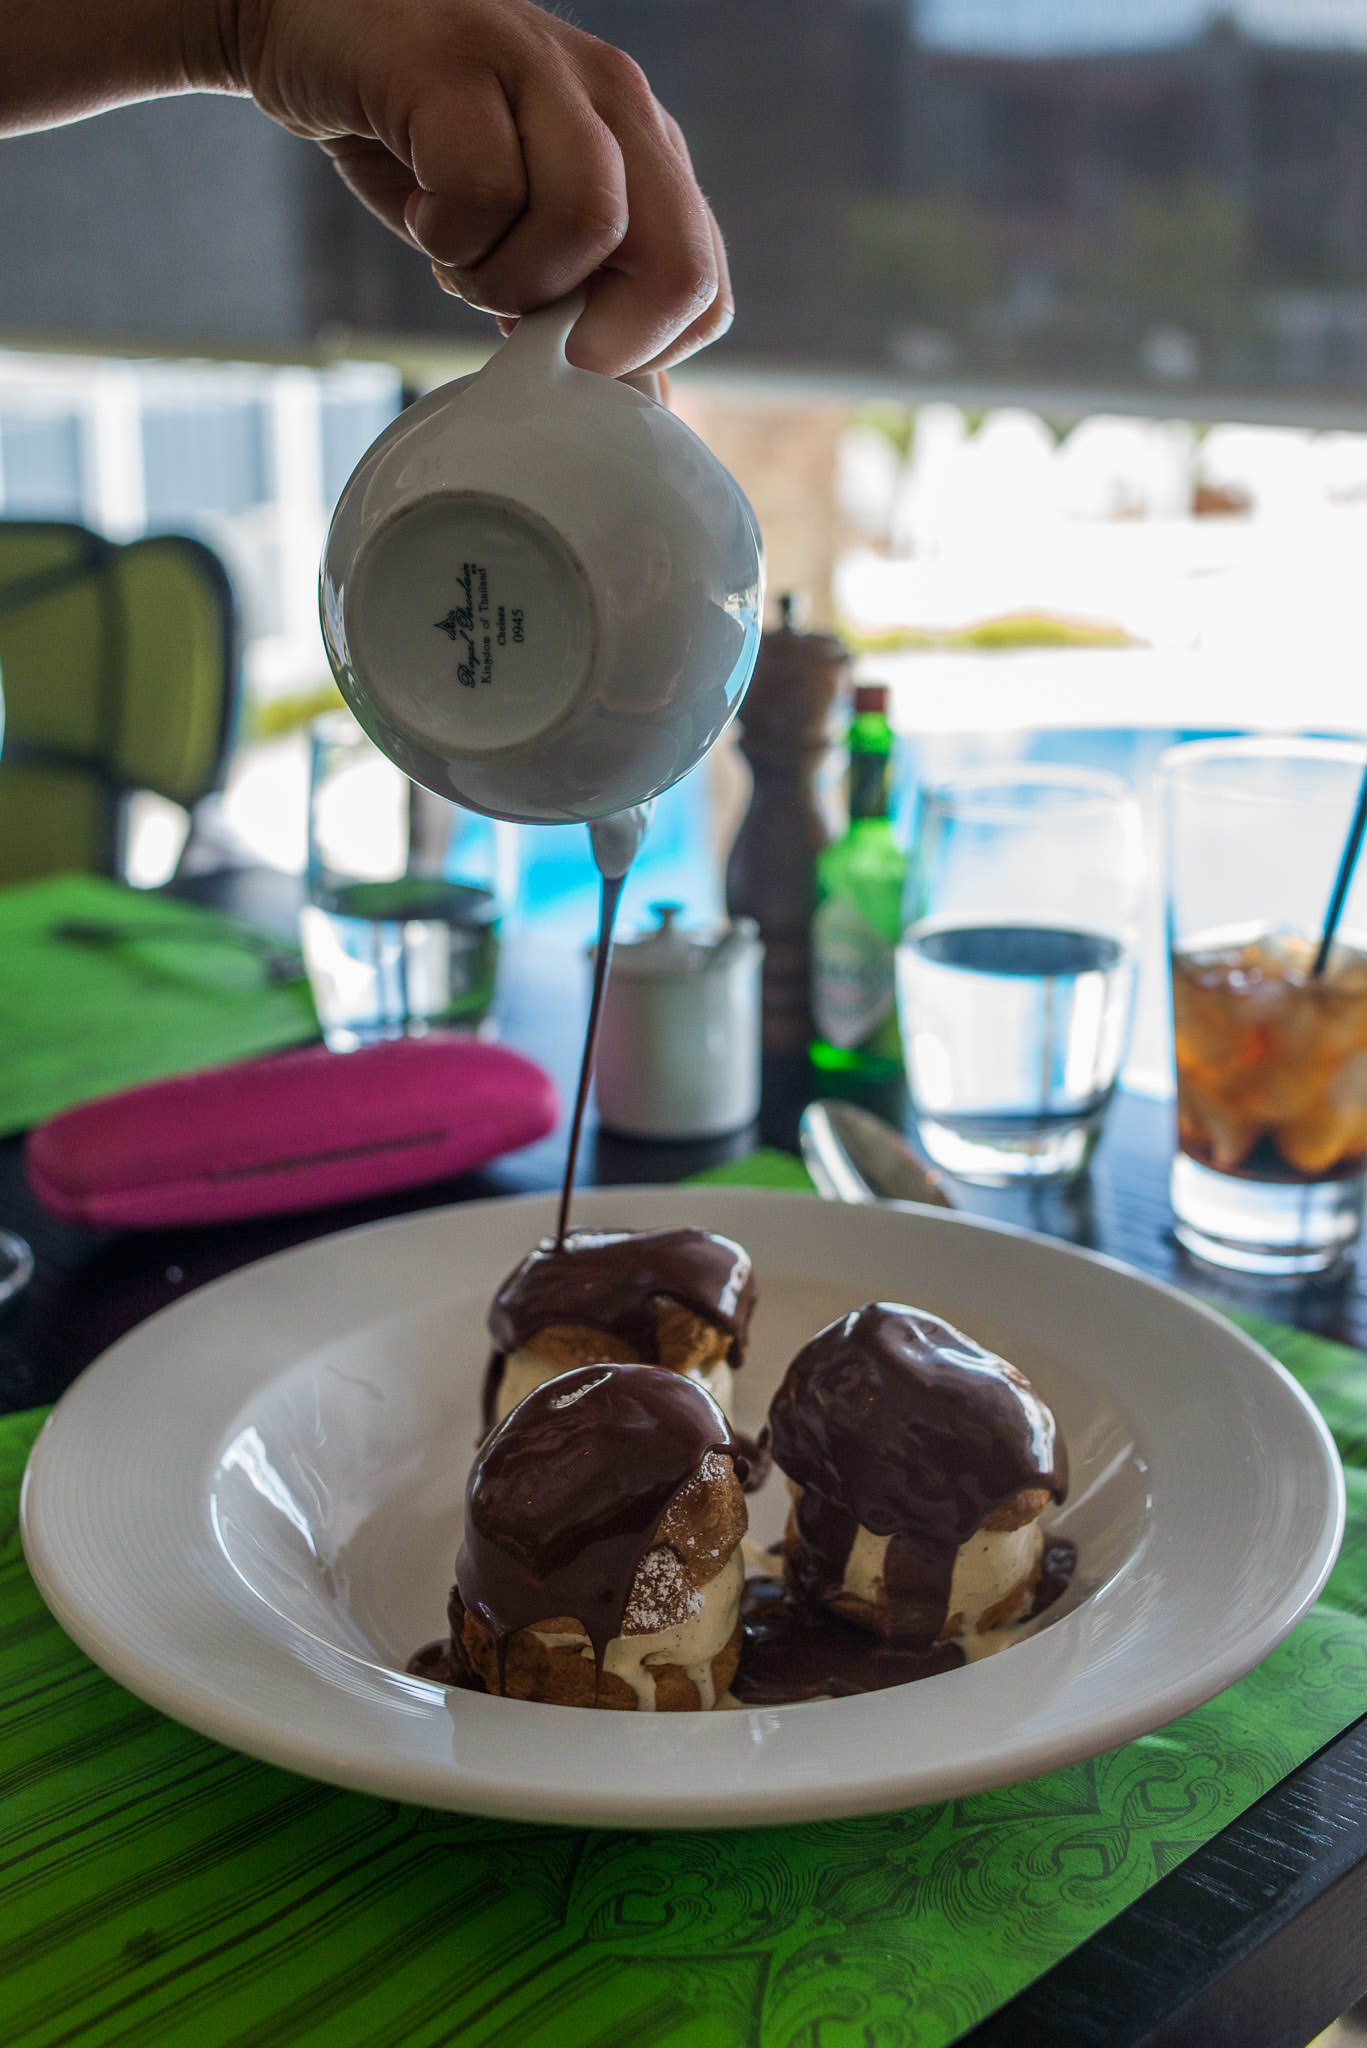 Profiteroles with vanilla bean ice cream and warm chocolate sauce (AU$18)